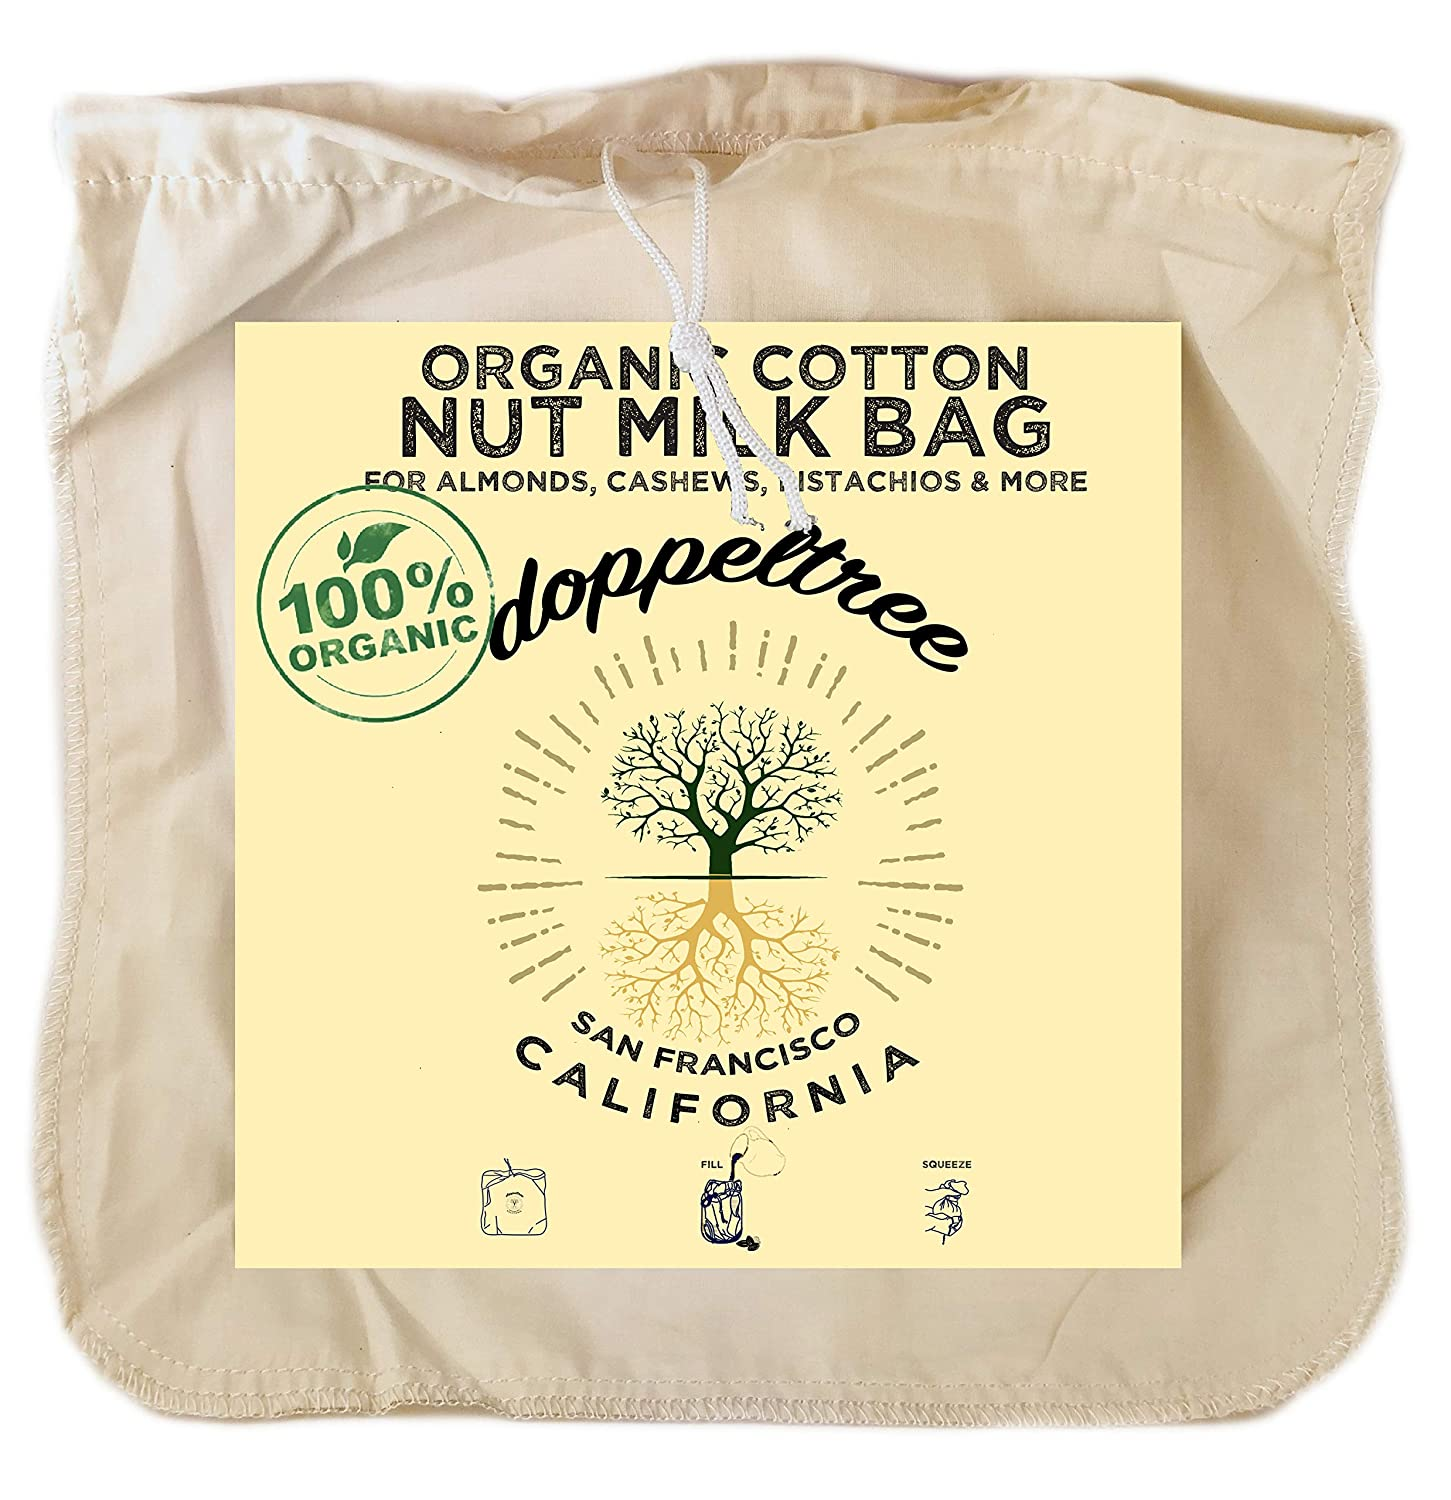 Premium Organic Cotton Reusable Nut Milk Bag - Extra Large 12 inch x 12 inch Fine Mesh Food Grade Almond, Soy, and Yogurt Strainer Cheesecloth with EasyOpen Drawstring - Designed in San Francisco